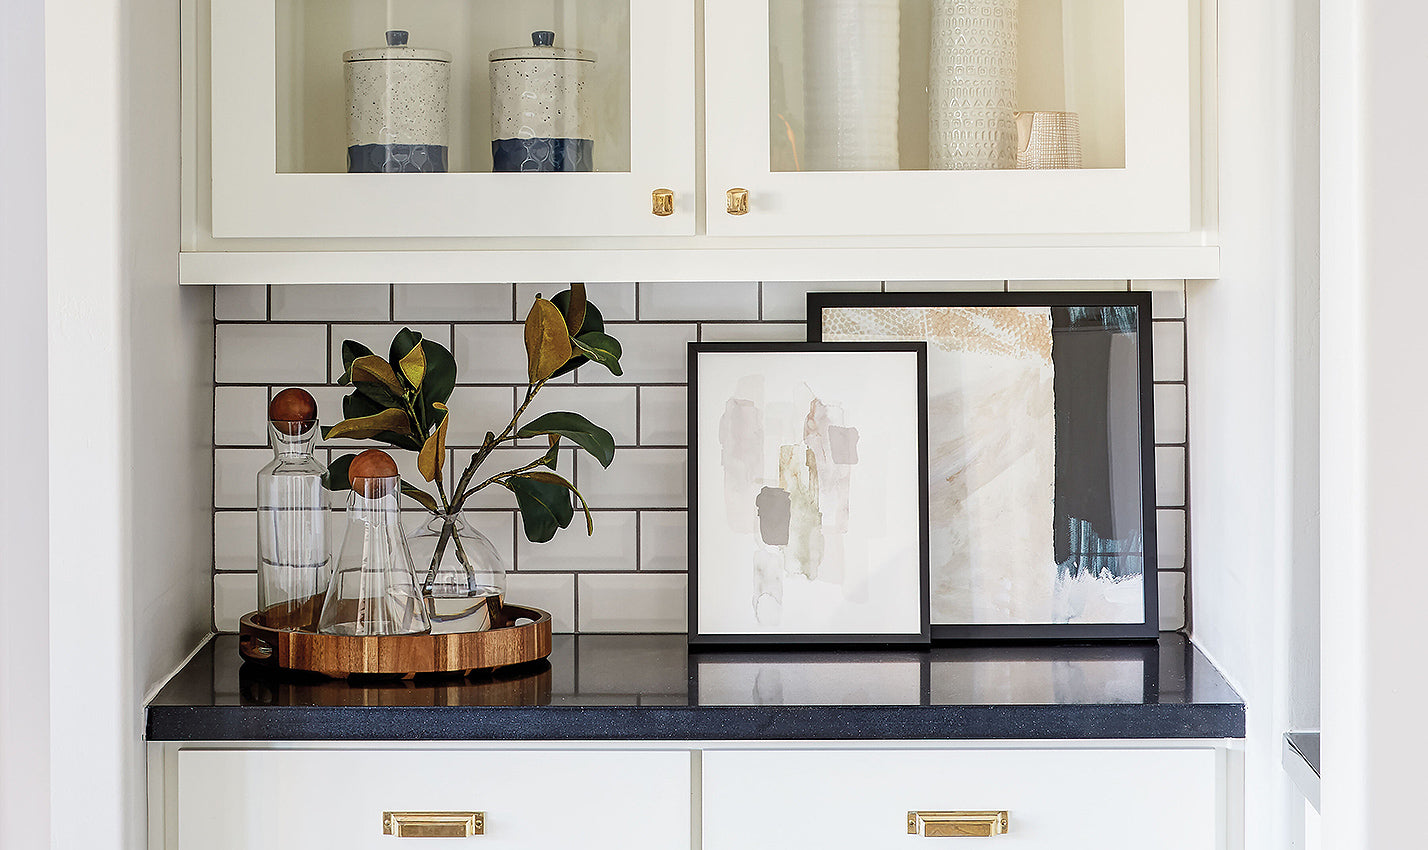 A kitchen nook/Photographer: John Woodcock/A bright kitchen nook in a Scottsdale home designed by Britany Simon of Britany Simon Design House masterfully balances different shades of white.